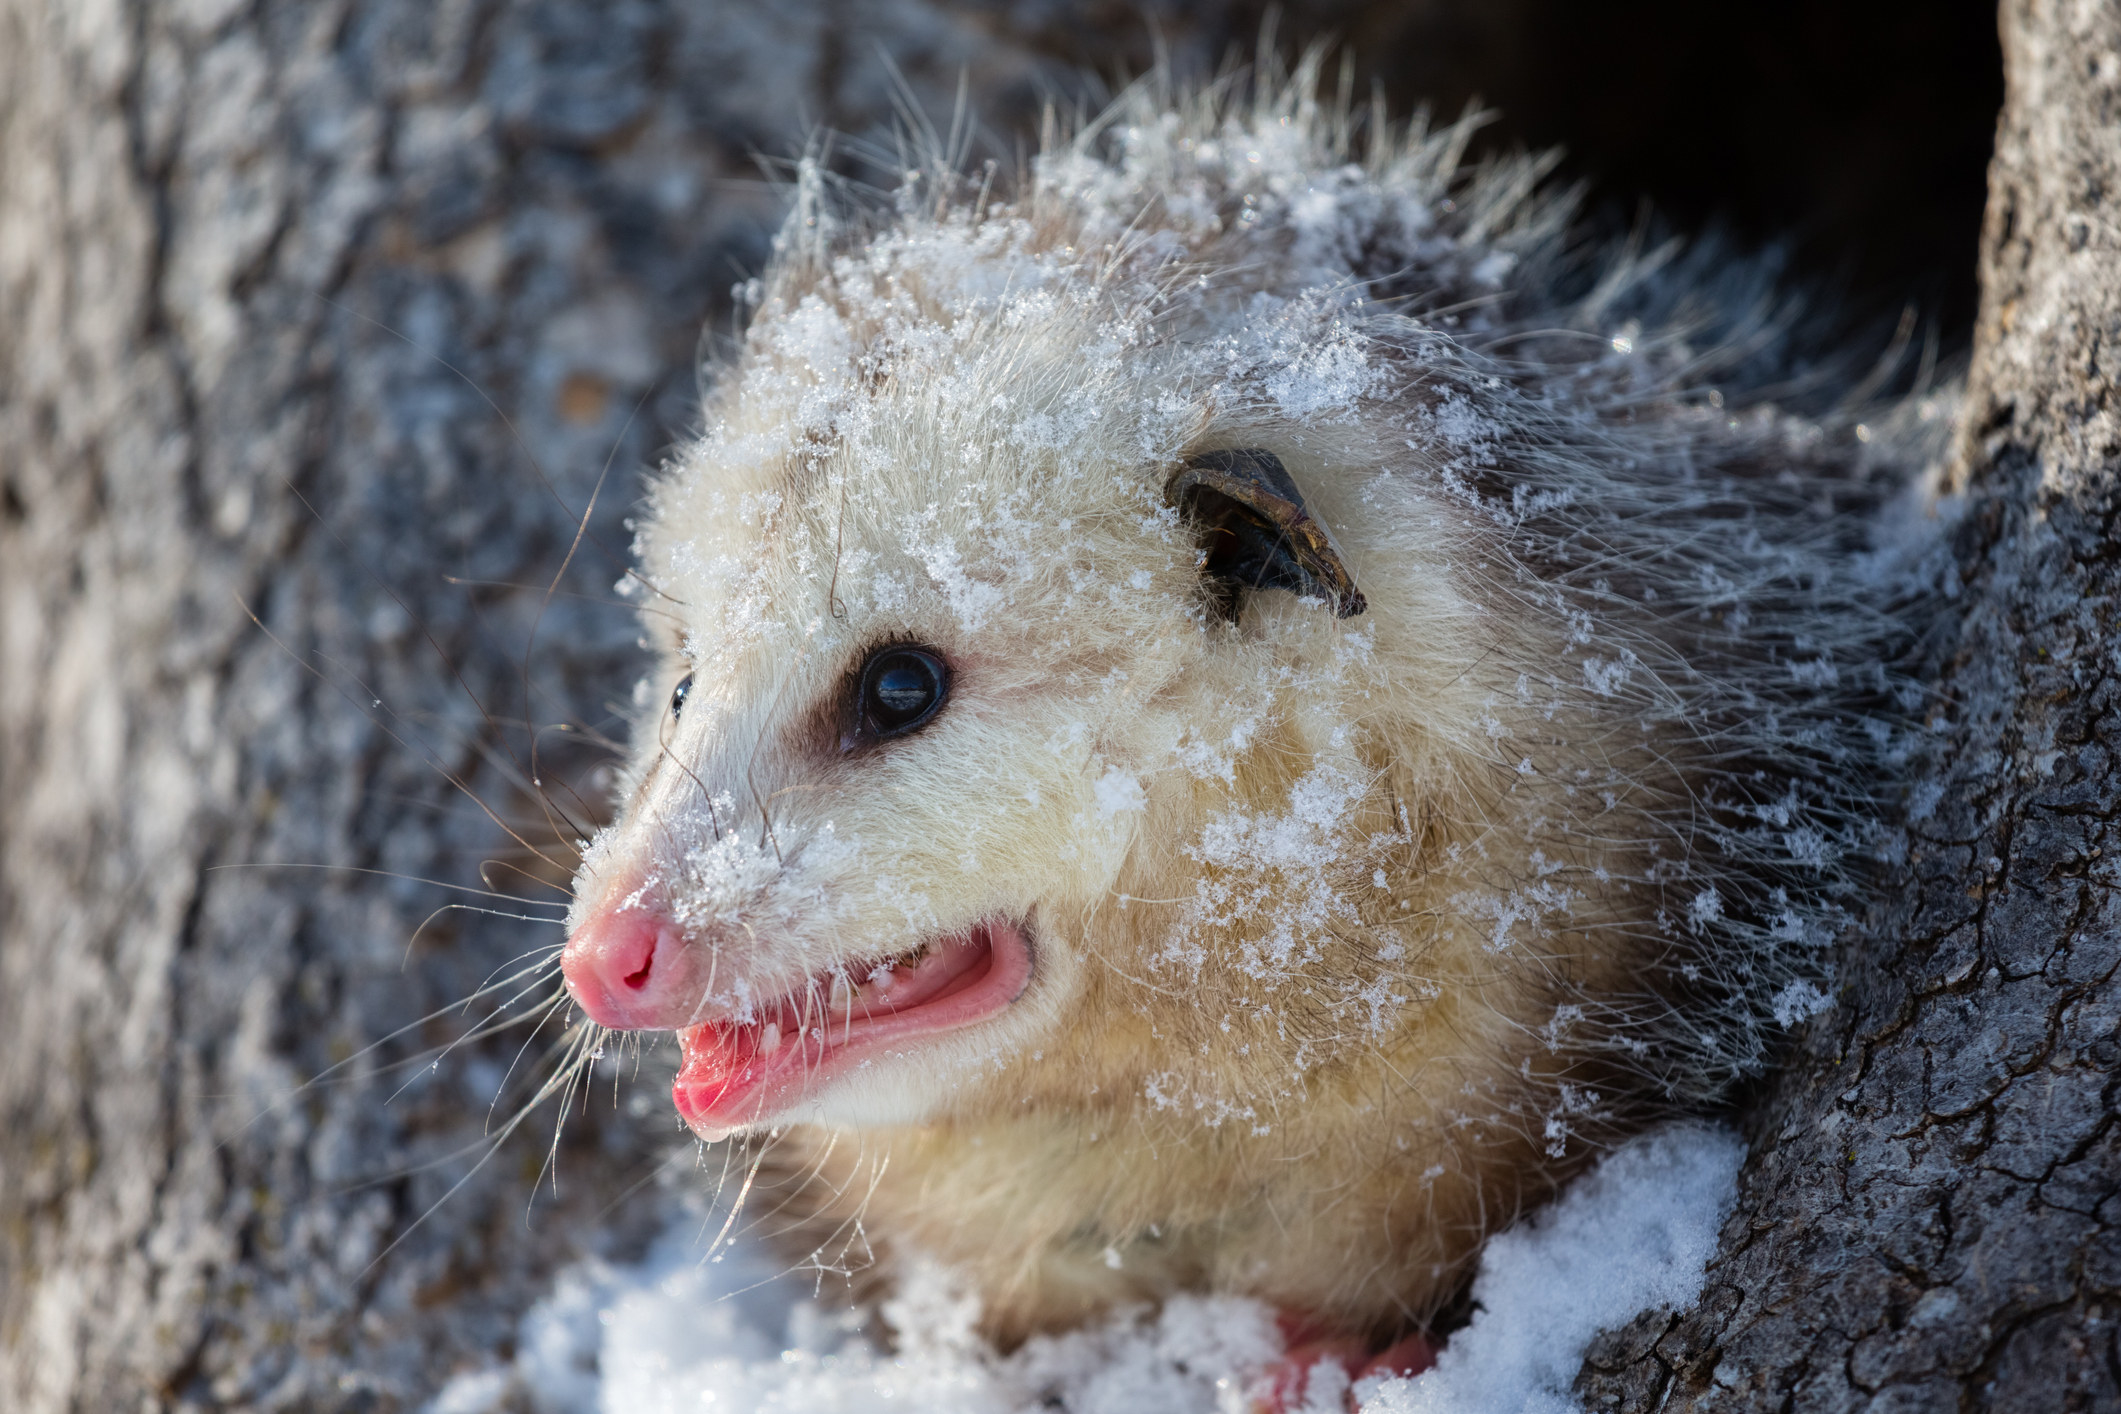 A pointy faced, beady eyed opossum in the snow